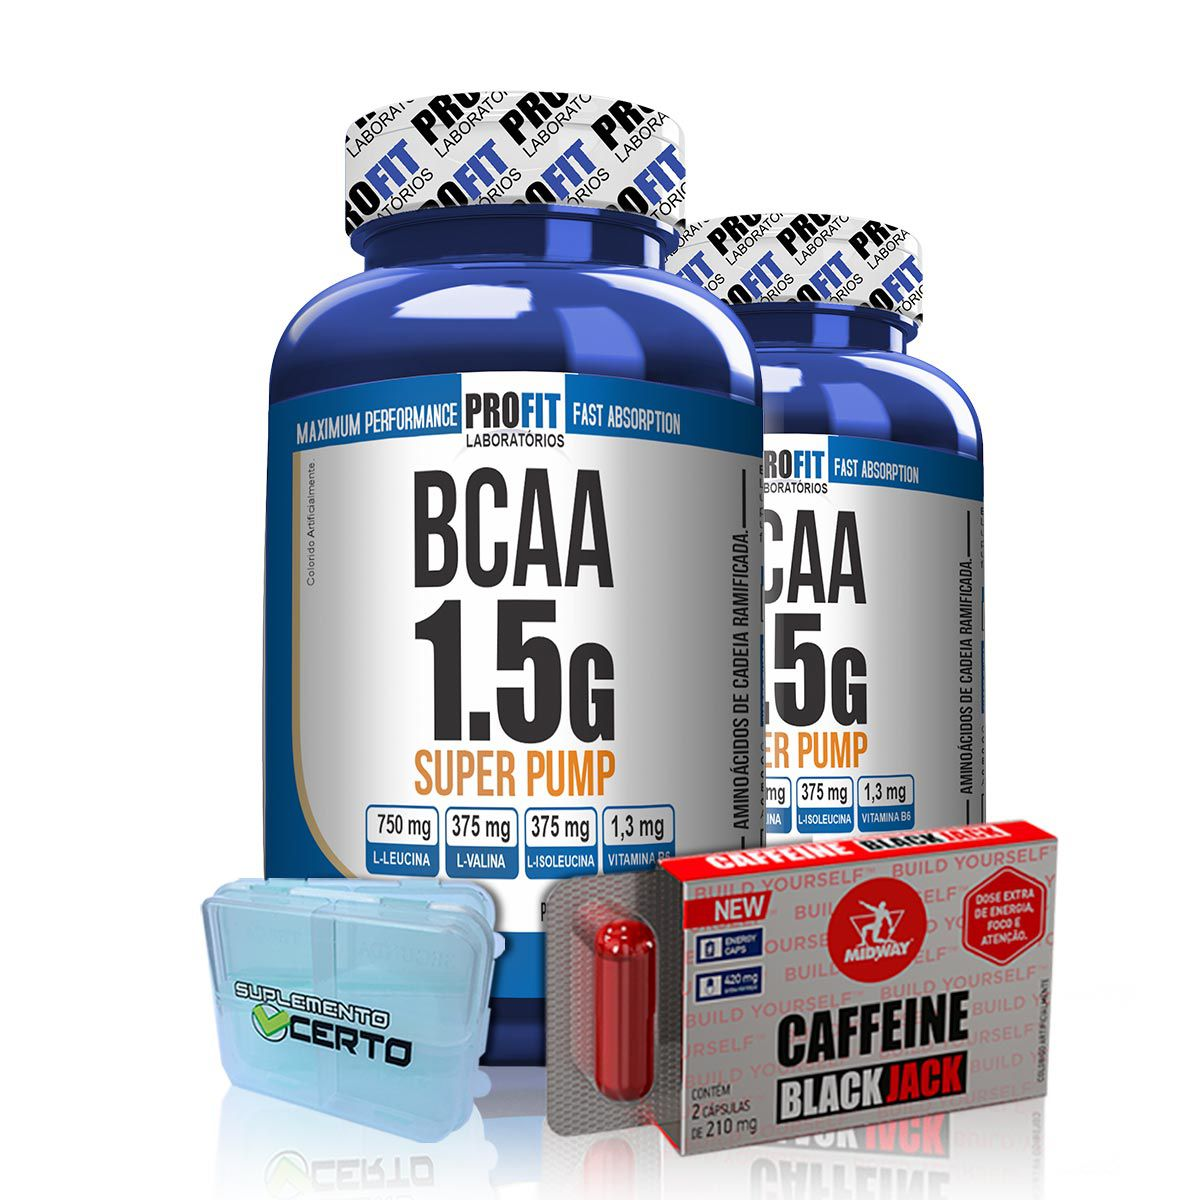 Kit 2x BCAA 1,5g Super Pump 60 Caps + Brindes - Profit